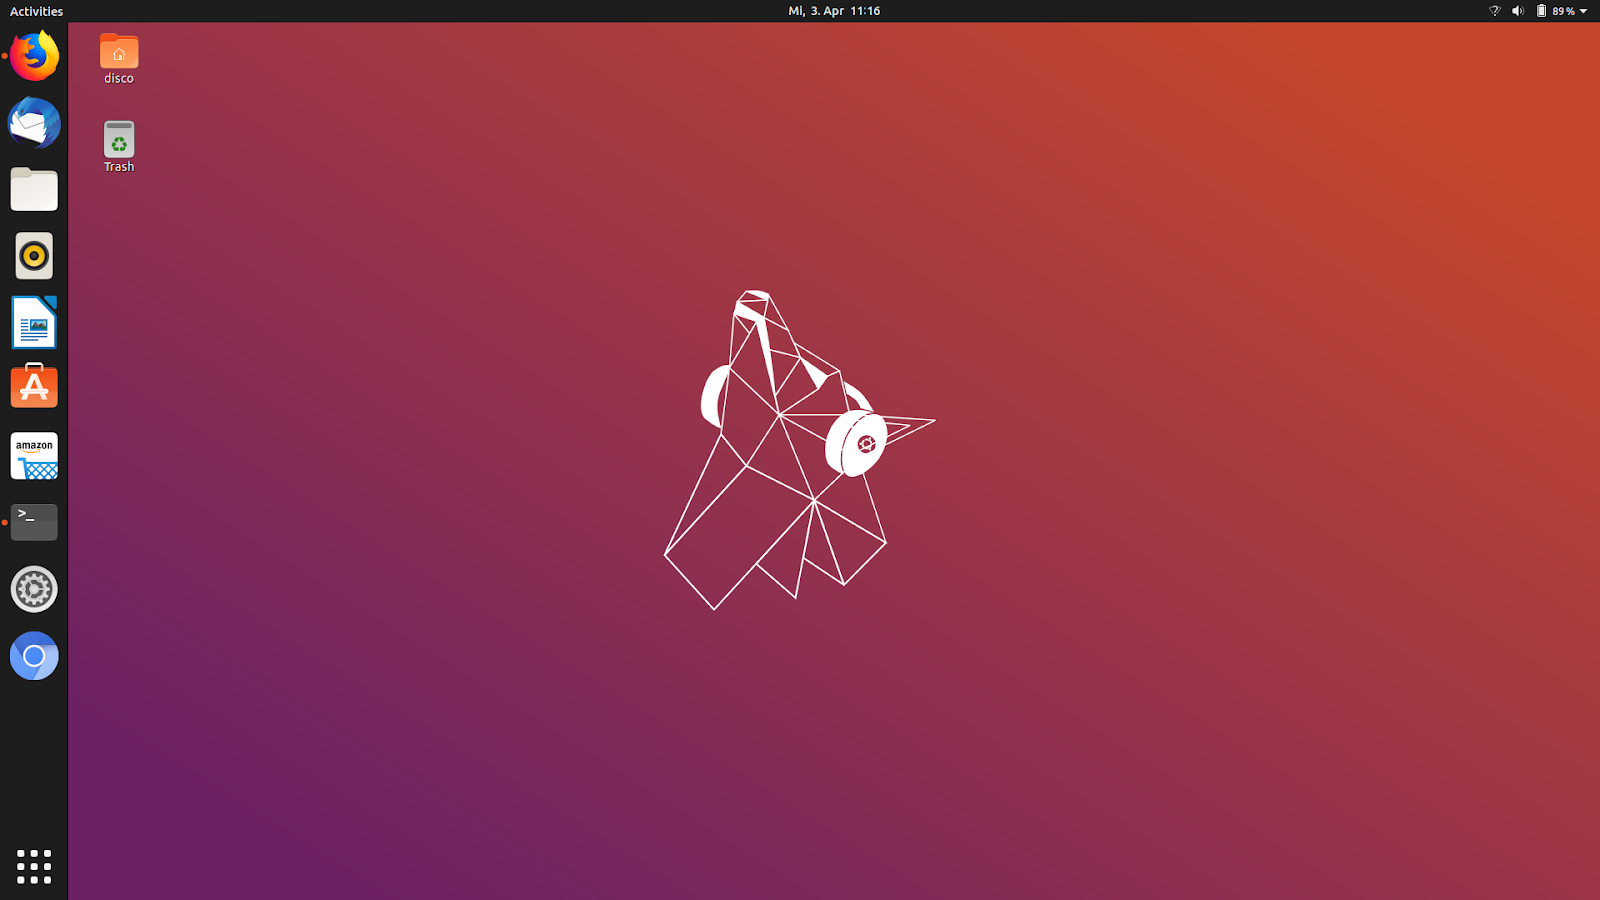 ubuntu 19.04 wallpaper